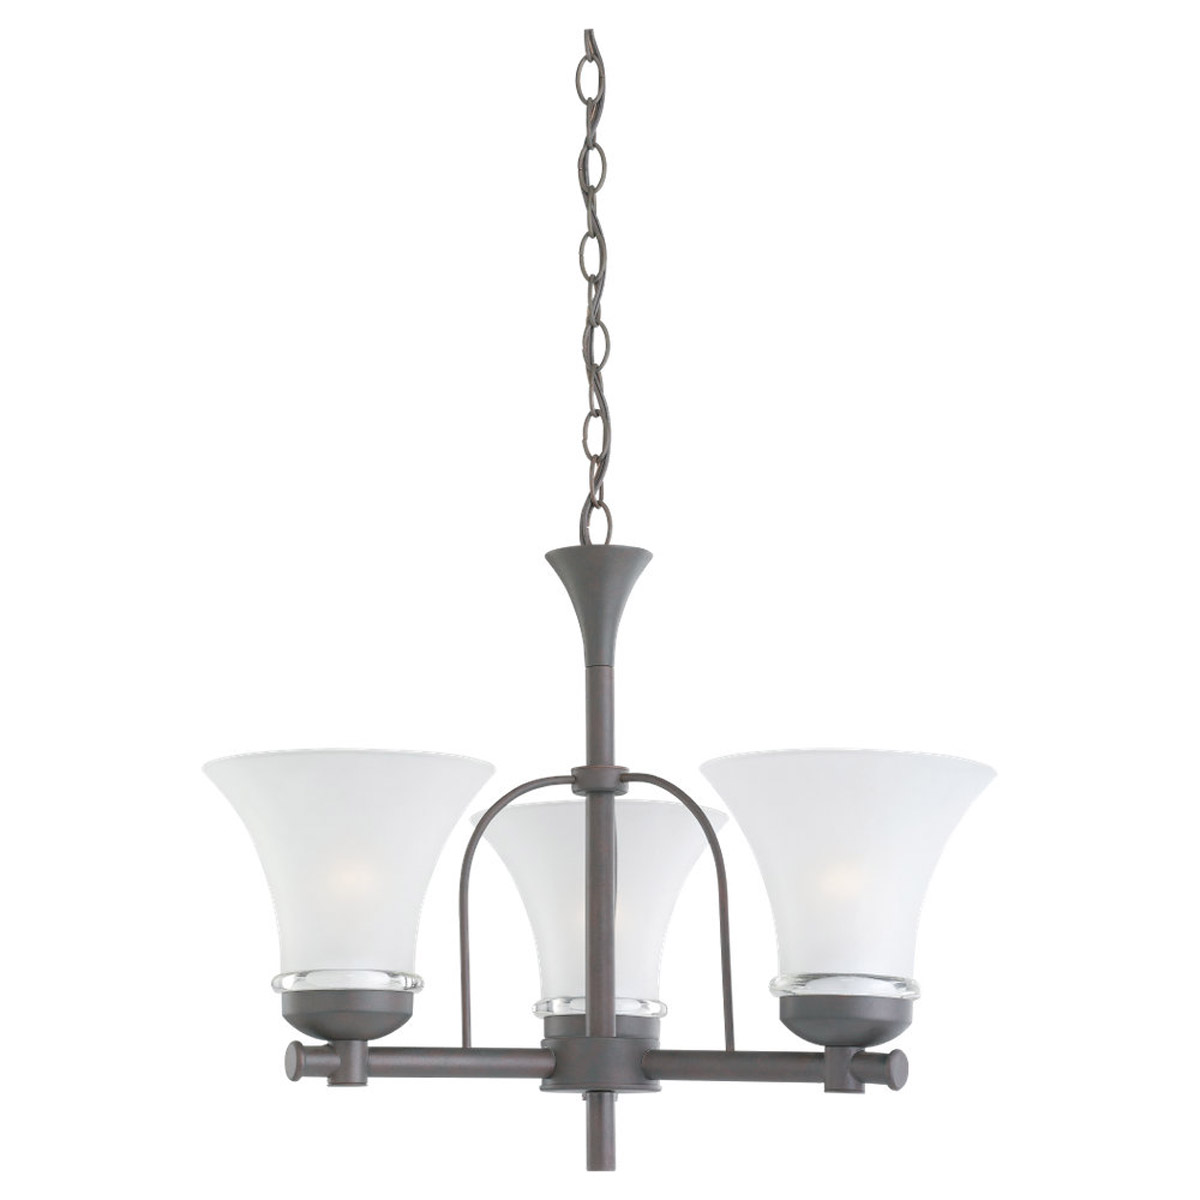 Sea Gull Lighting Newport 3 Light Fluorescent Chandelier in Misted Bronze 31282BLE-814 photo